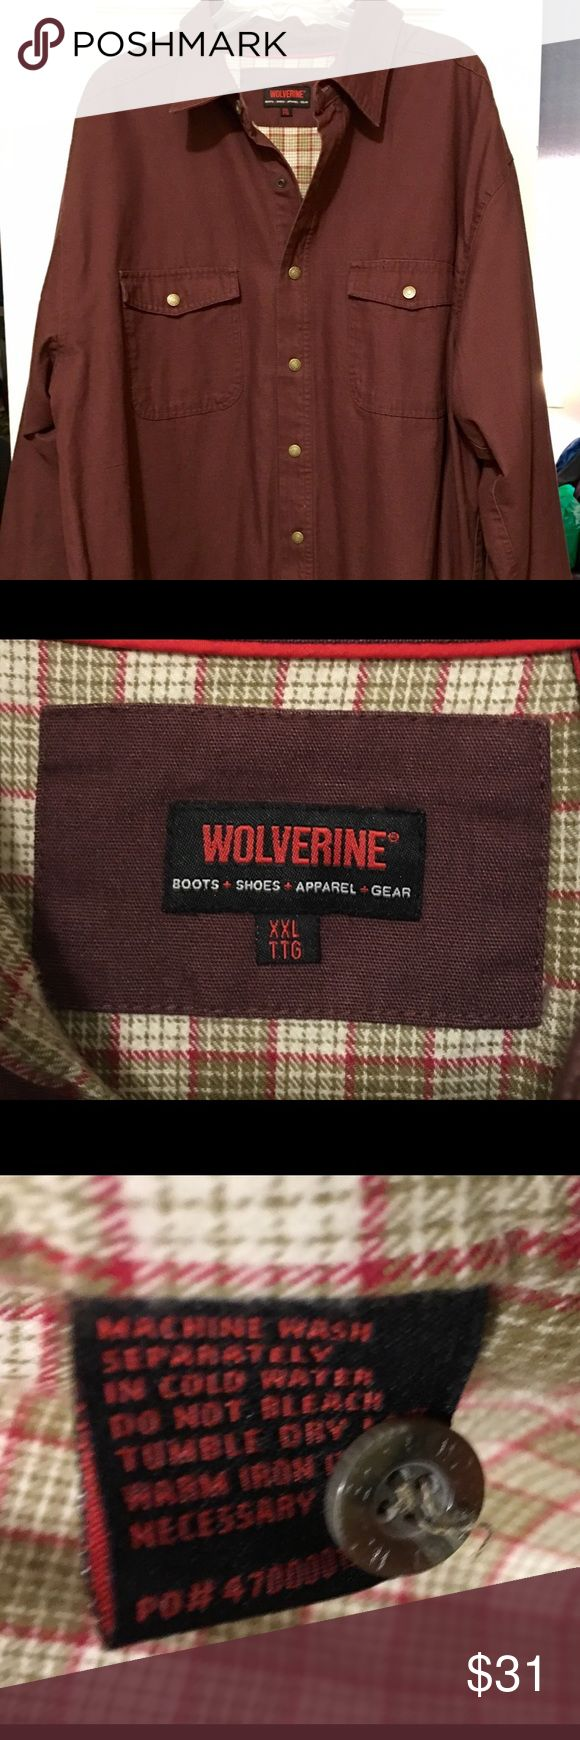 Men's Wolverine Insulated Shirt Sz XXL Men's Heavyweight-Insulated shirt by Wolverine. Front pockets, snap closure. Worn once or twice. Great condition. Wolverine Shirts Casual Button Down Shirts